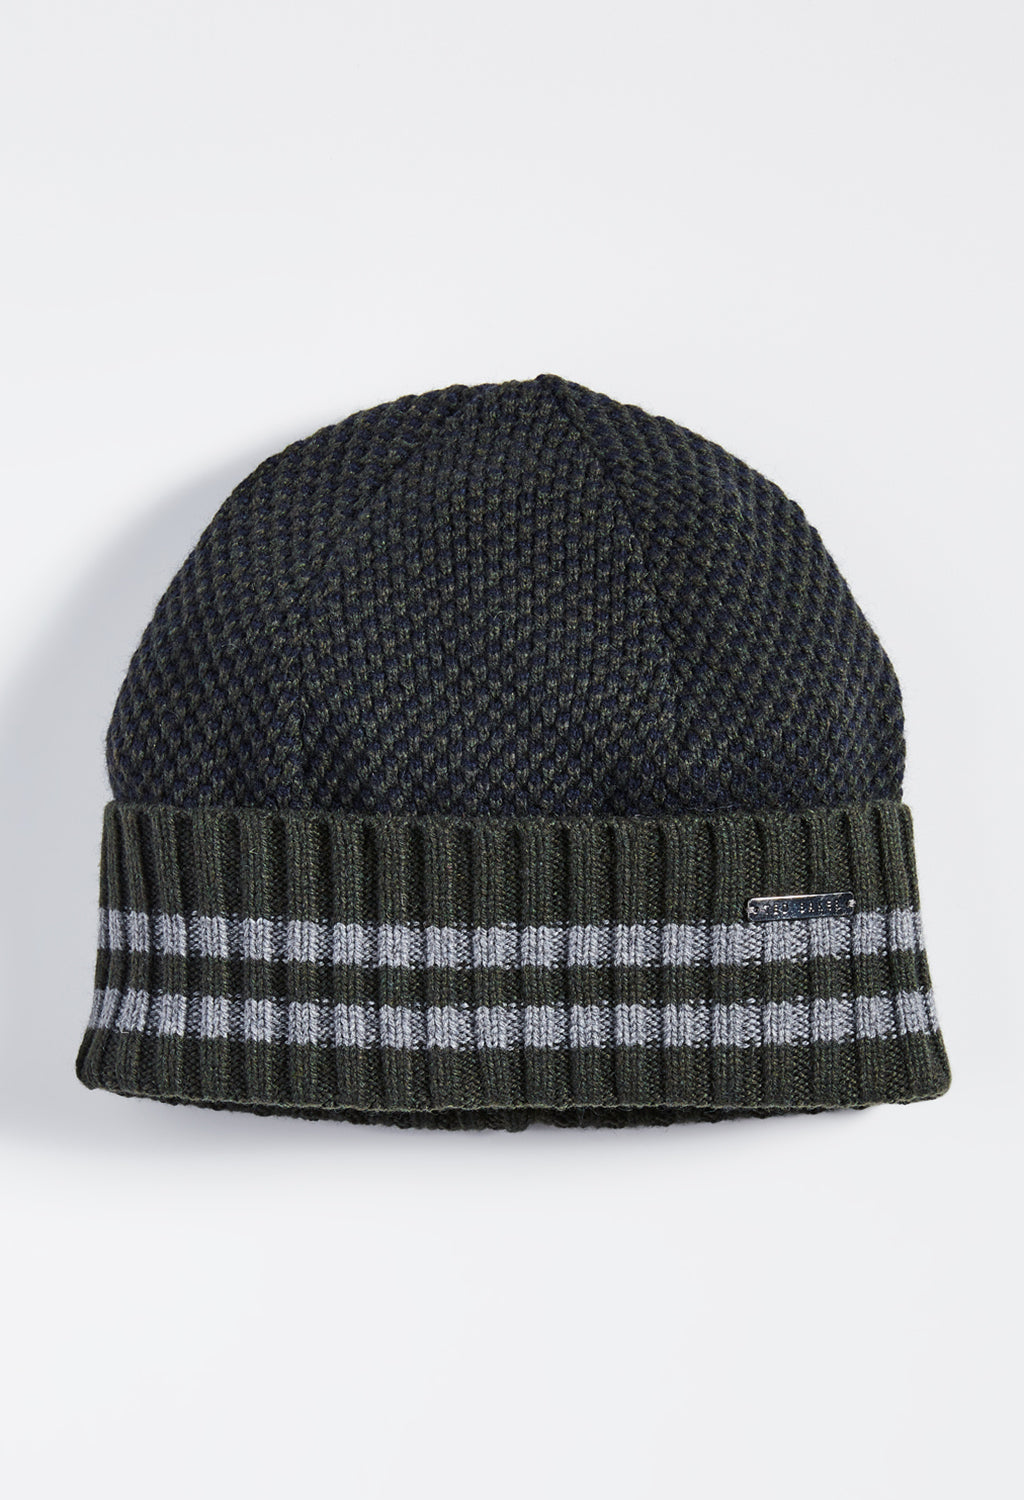 Ted Baker Rush Birdseye Jacquard Hat - RUST & Co.